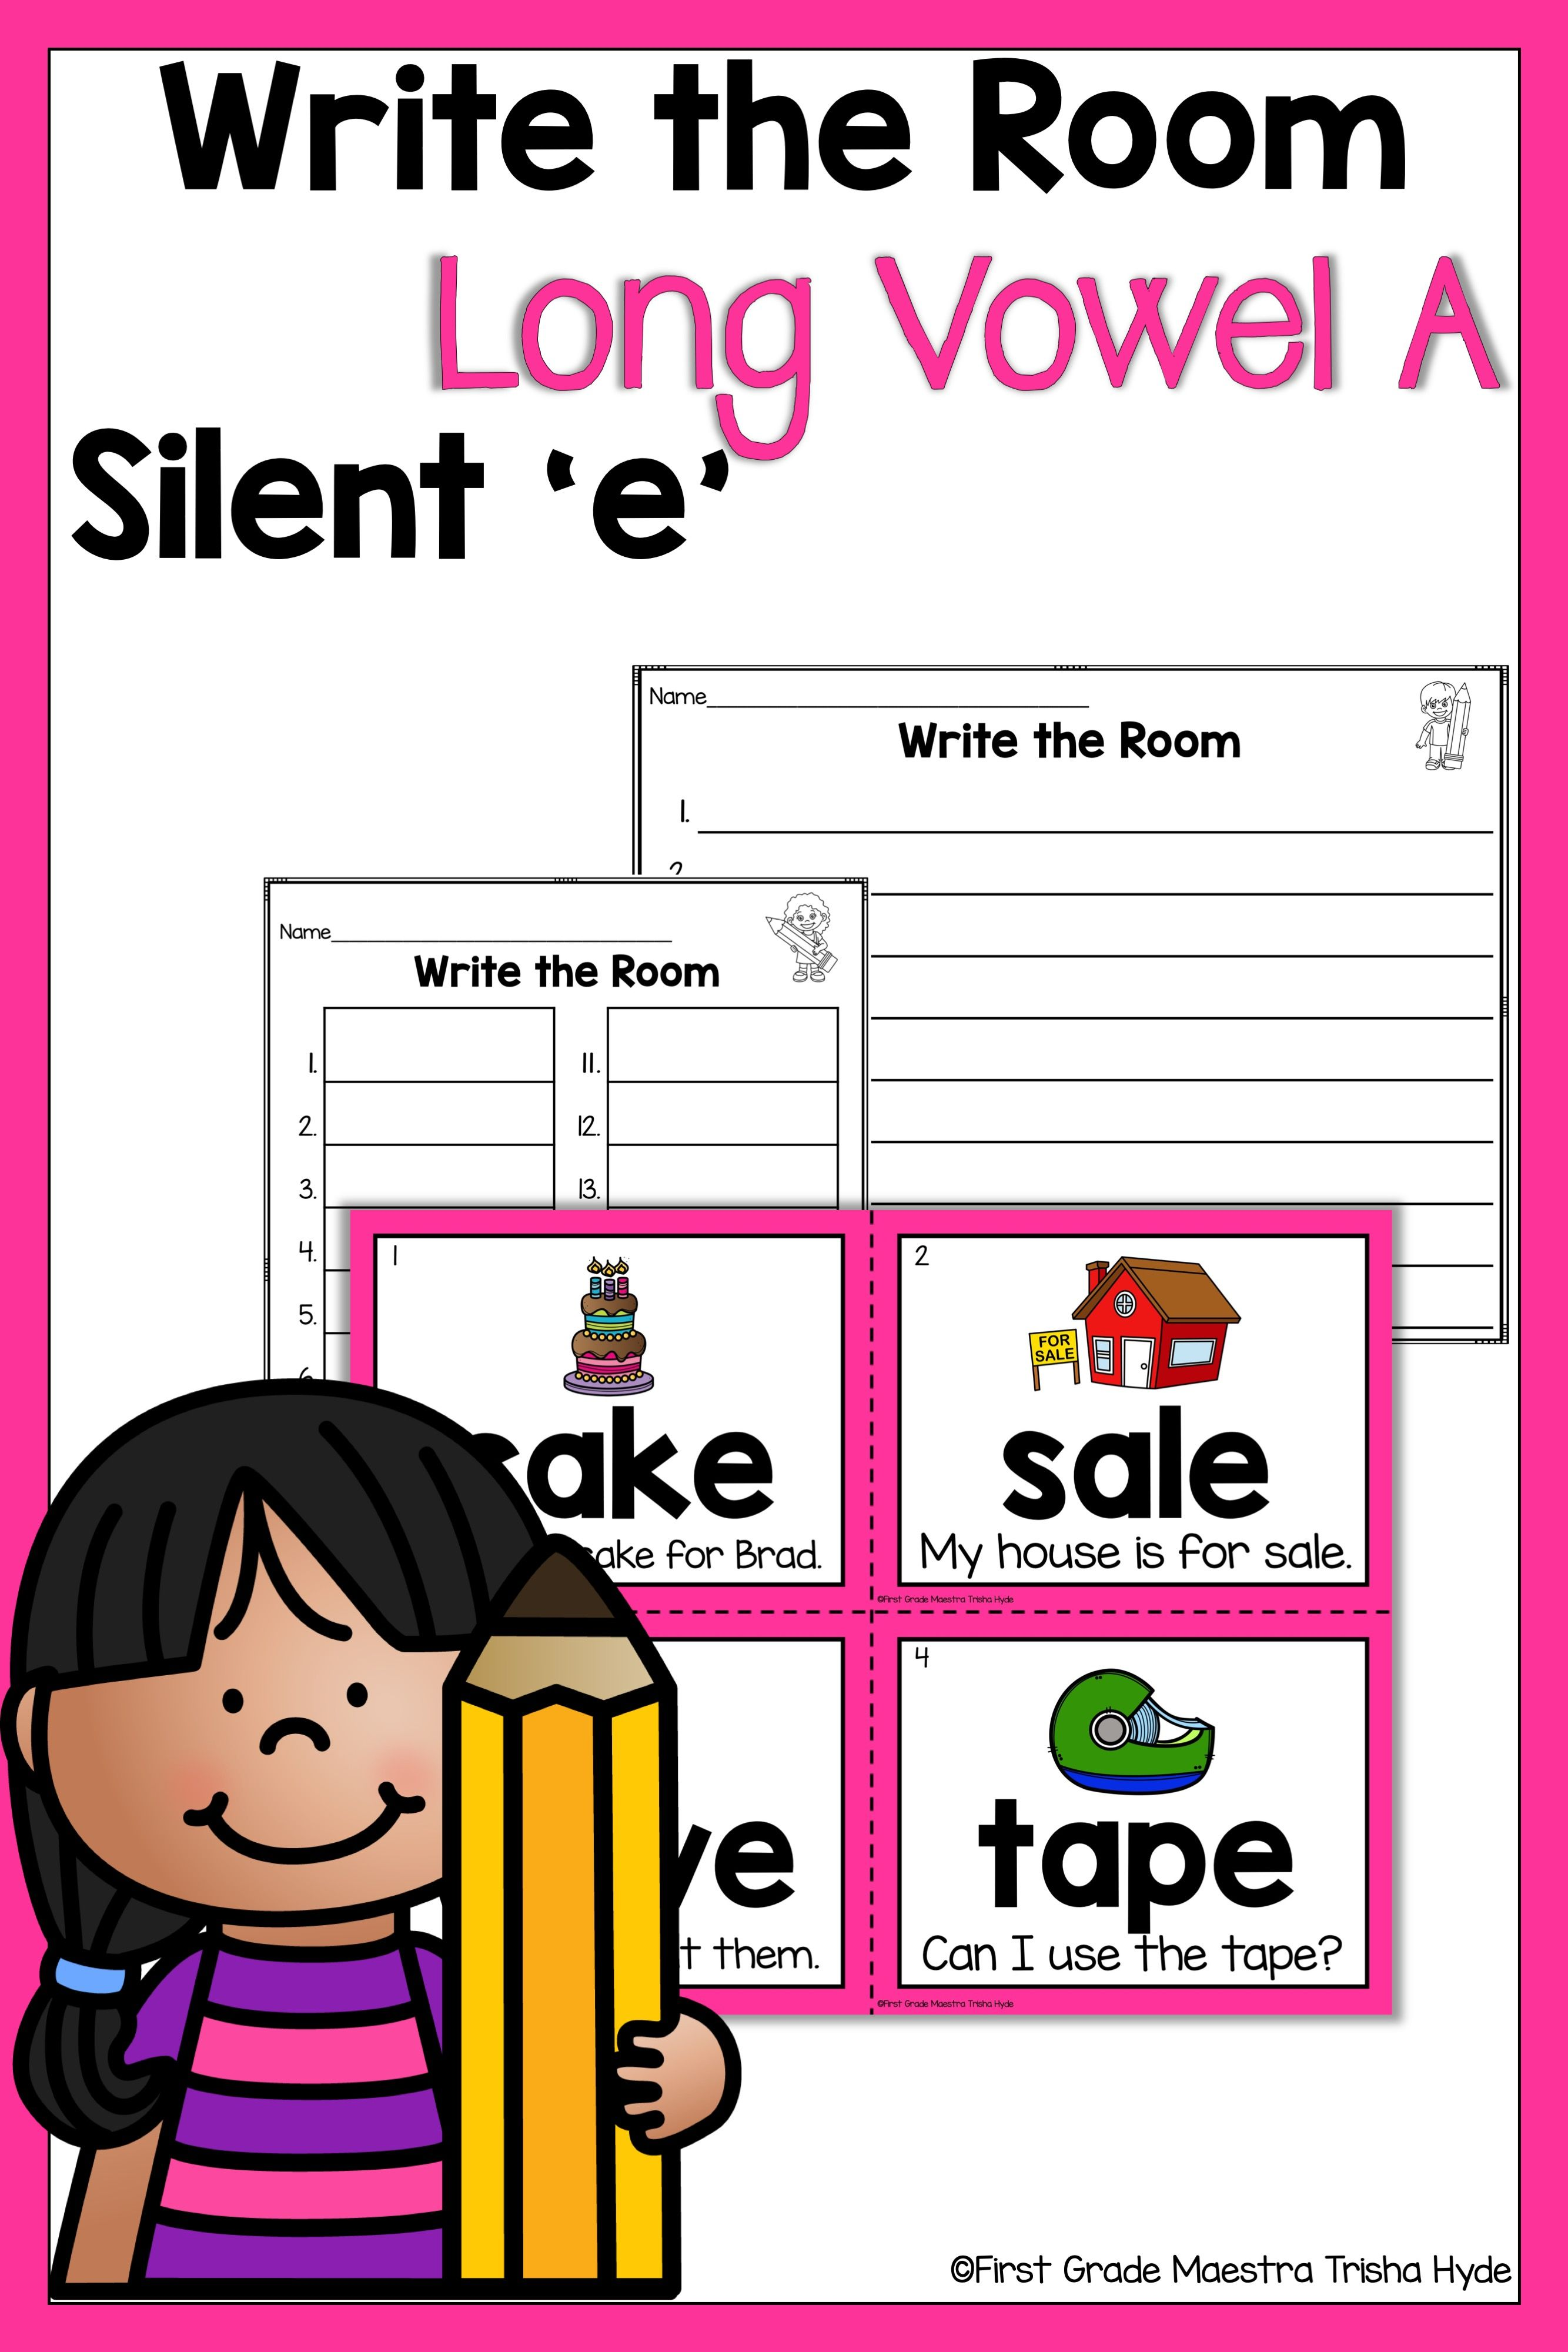 hight resolution of Write the Room Long Vowel A Silent E   Silent e